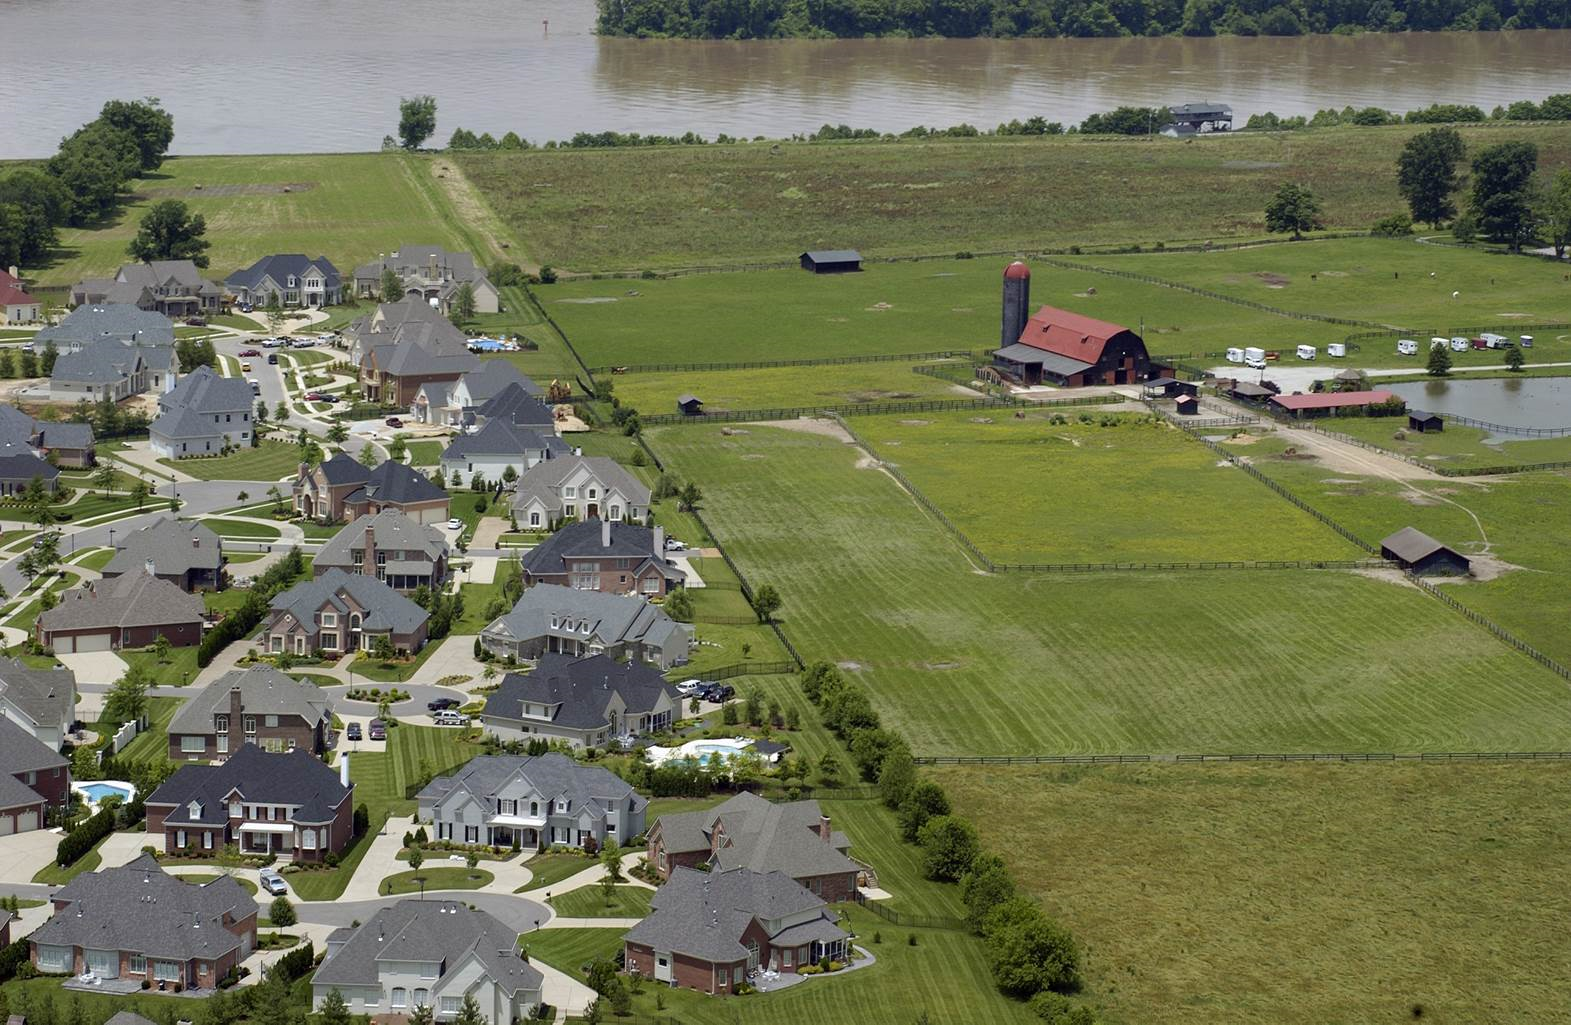 Healthy farms as a buffer to sprawl; an emotional appeal to modern consumers